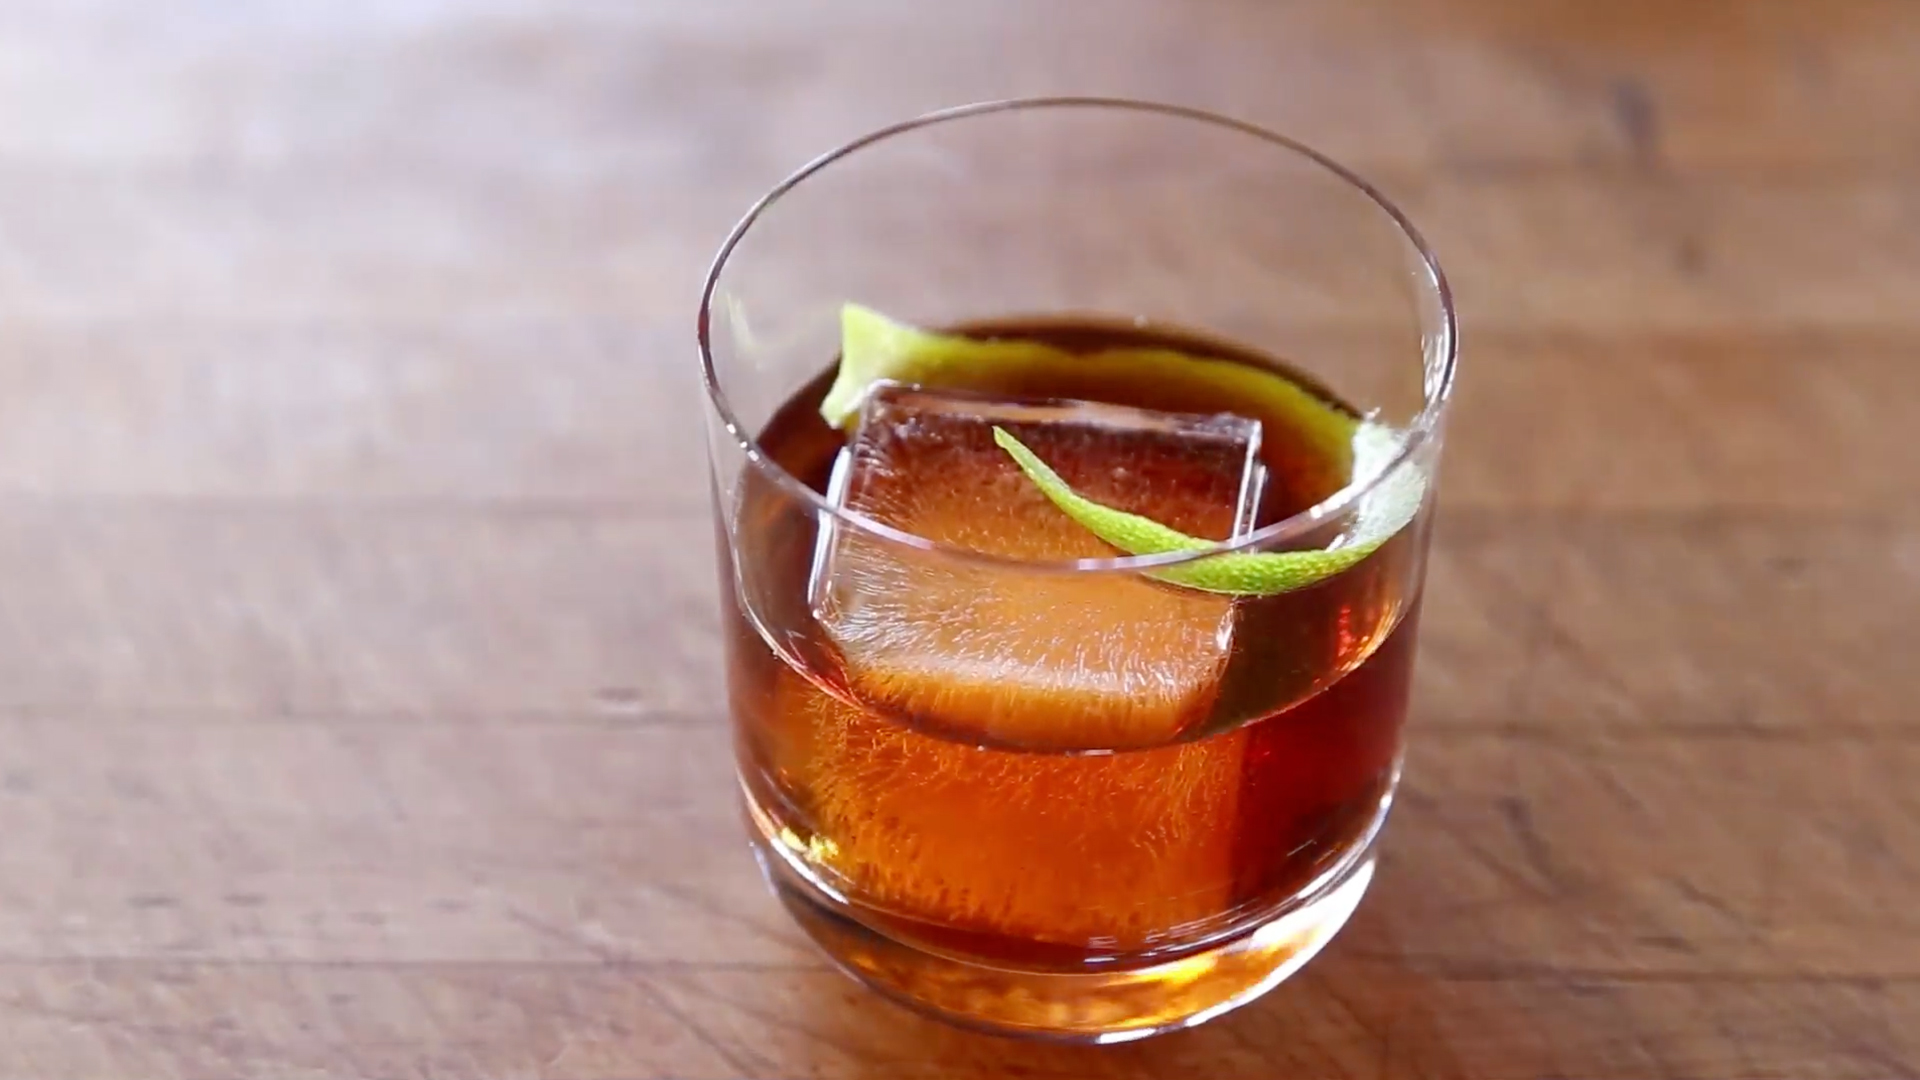 How to Make an Amazing Amaro Cocktail